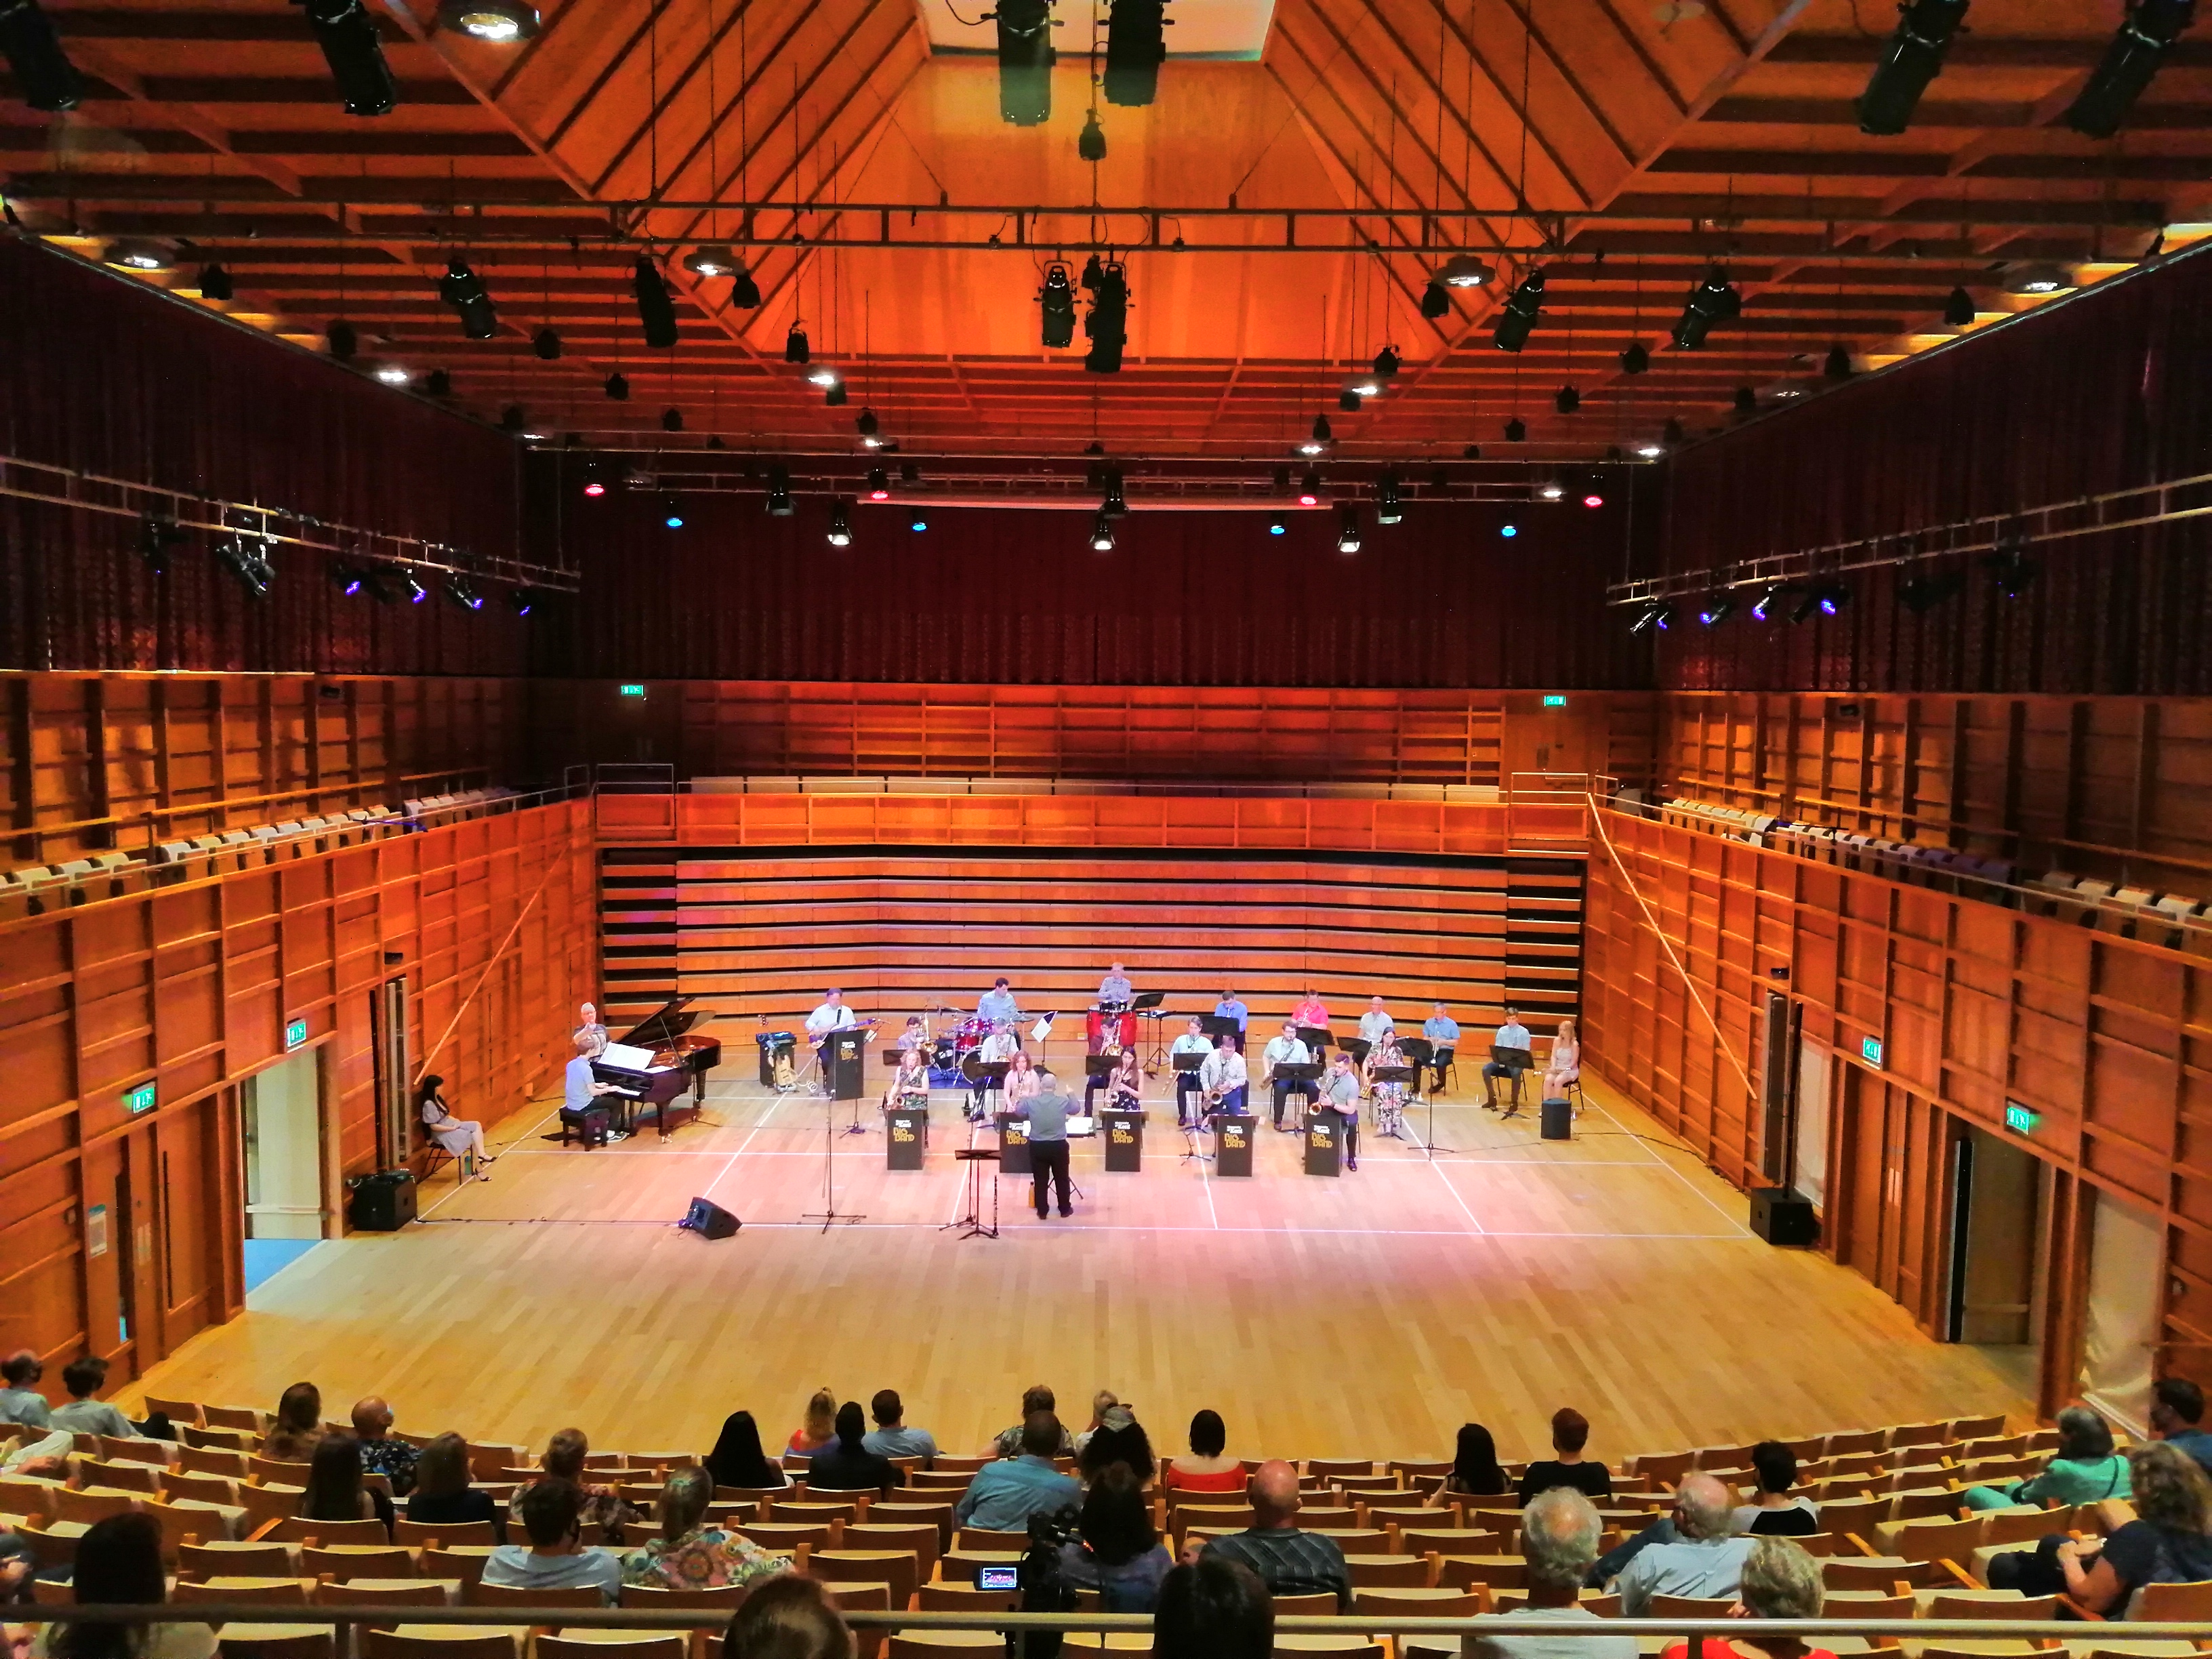 Summer Music Week: Big Band Sunday Swing and Scholars' Lunchtime Recital